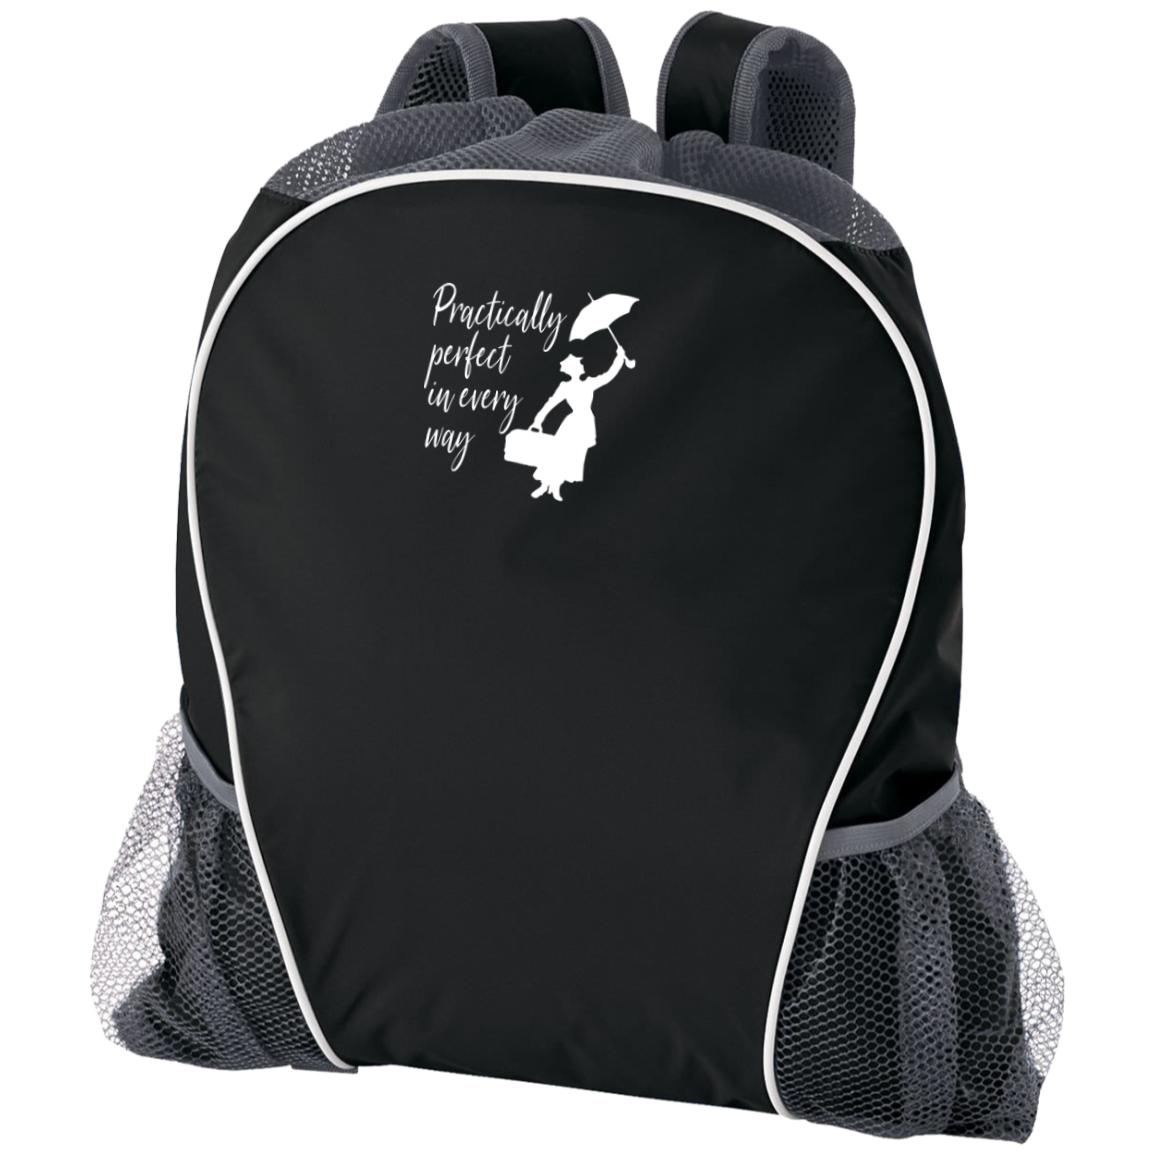 Mary Poppins Practically Perfect - Rig Bag